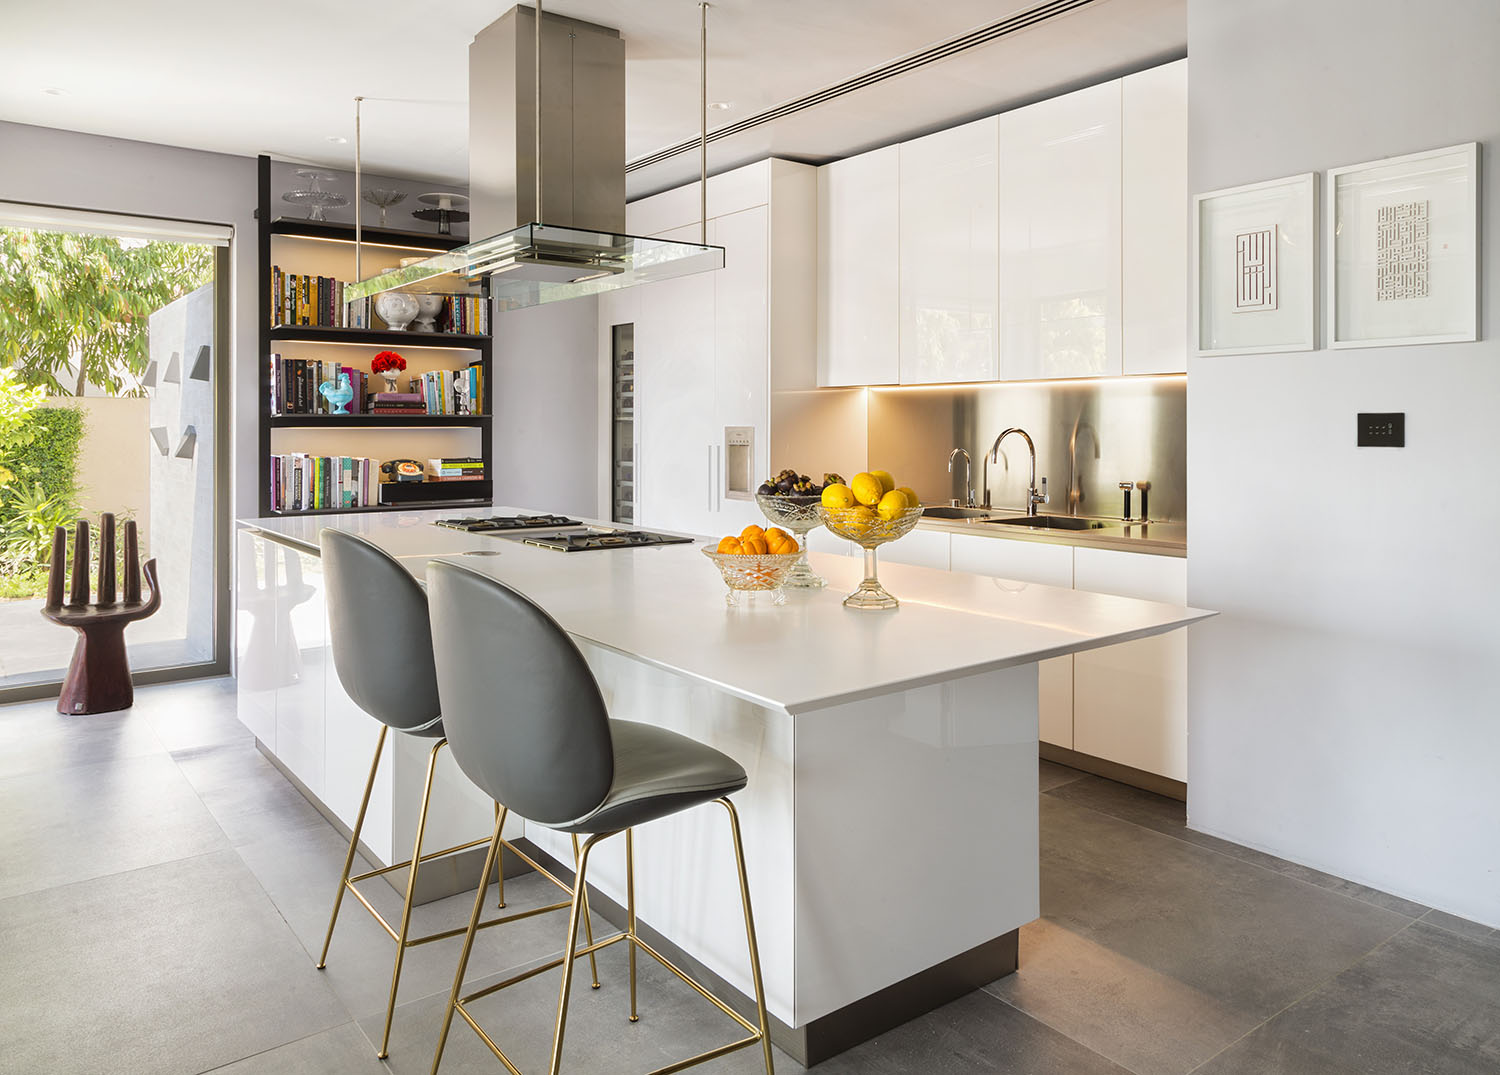 Interior photography of a Boffi kitchen